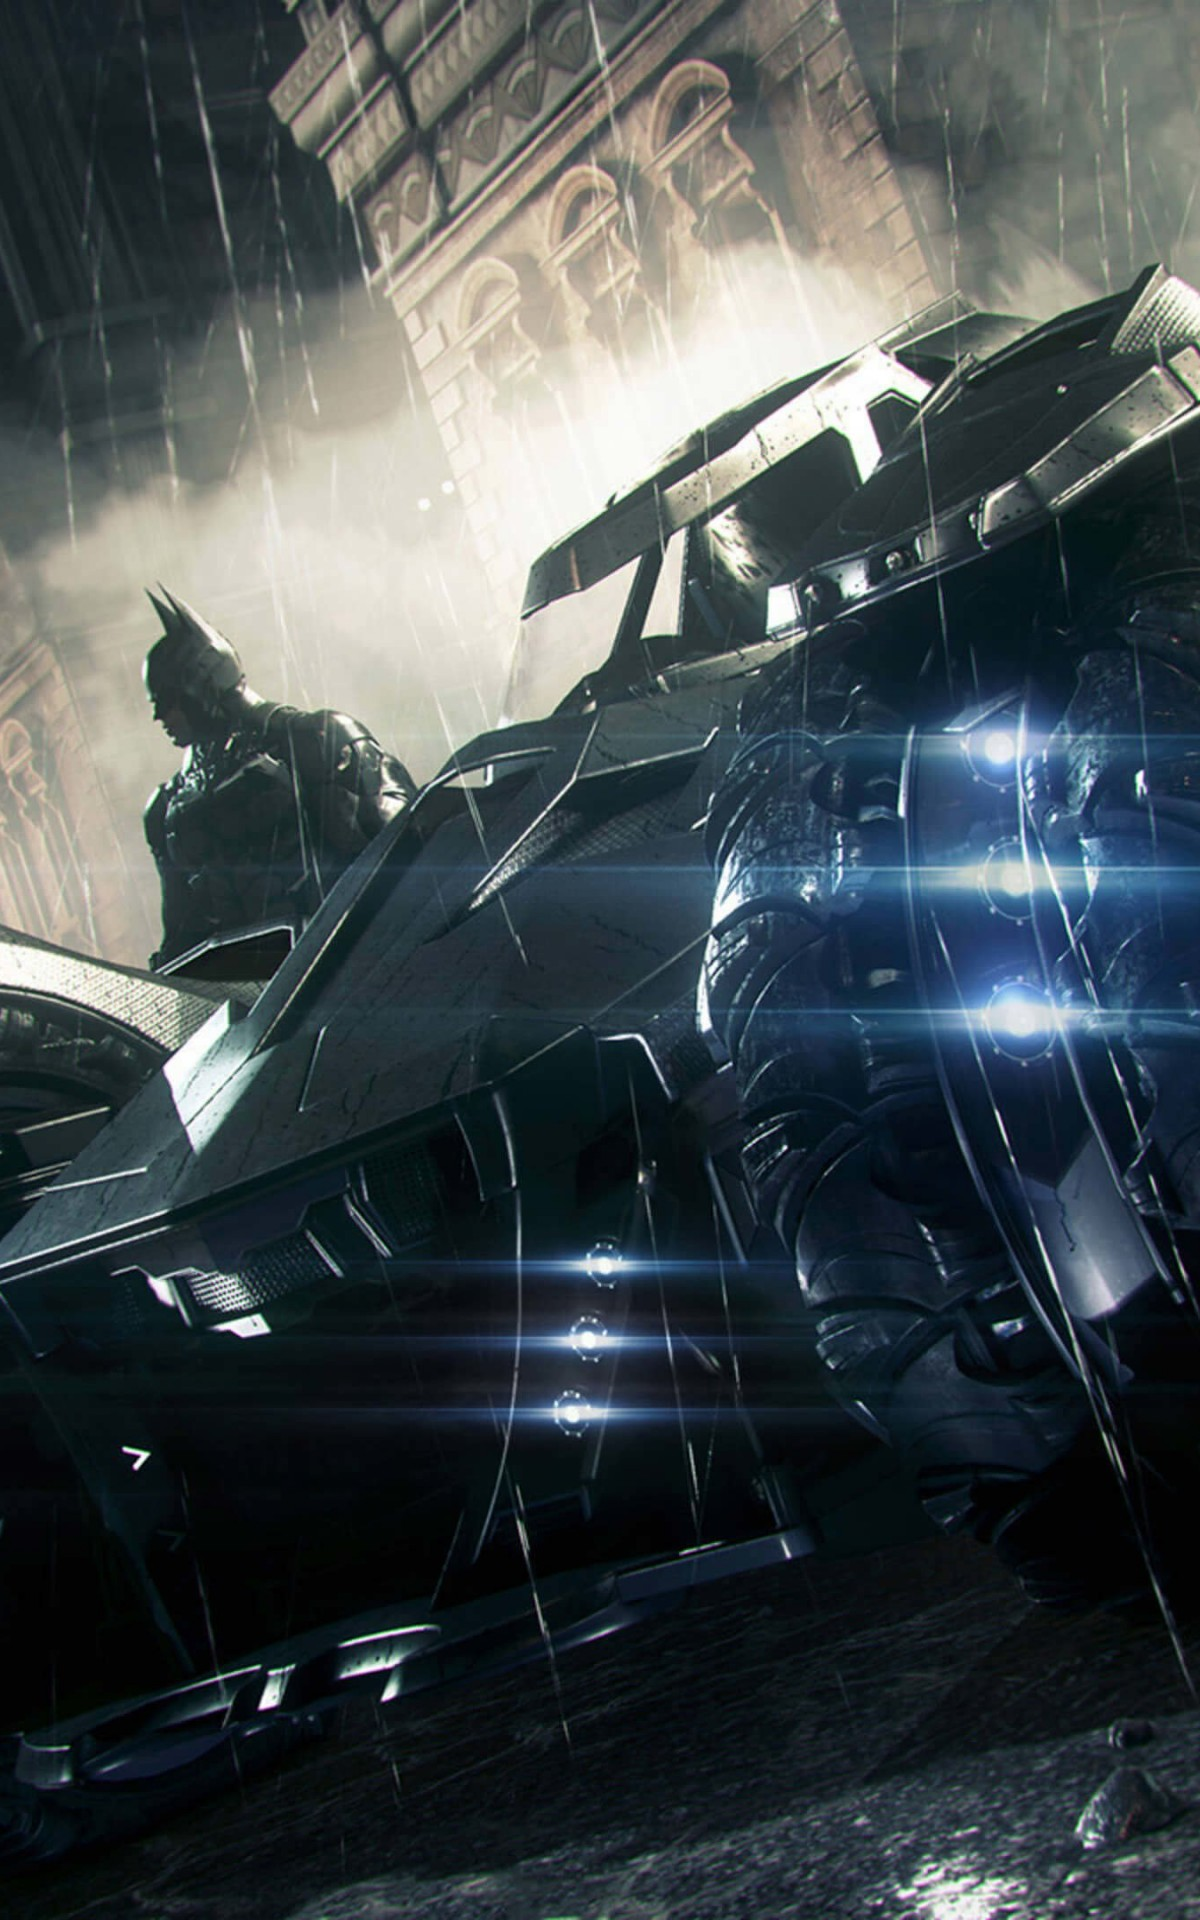 Batmobile - Batman Arkham Knight Wallpaper for Amazon Kindle Fire HDX